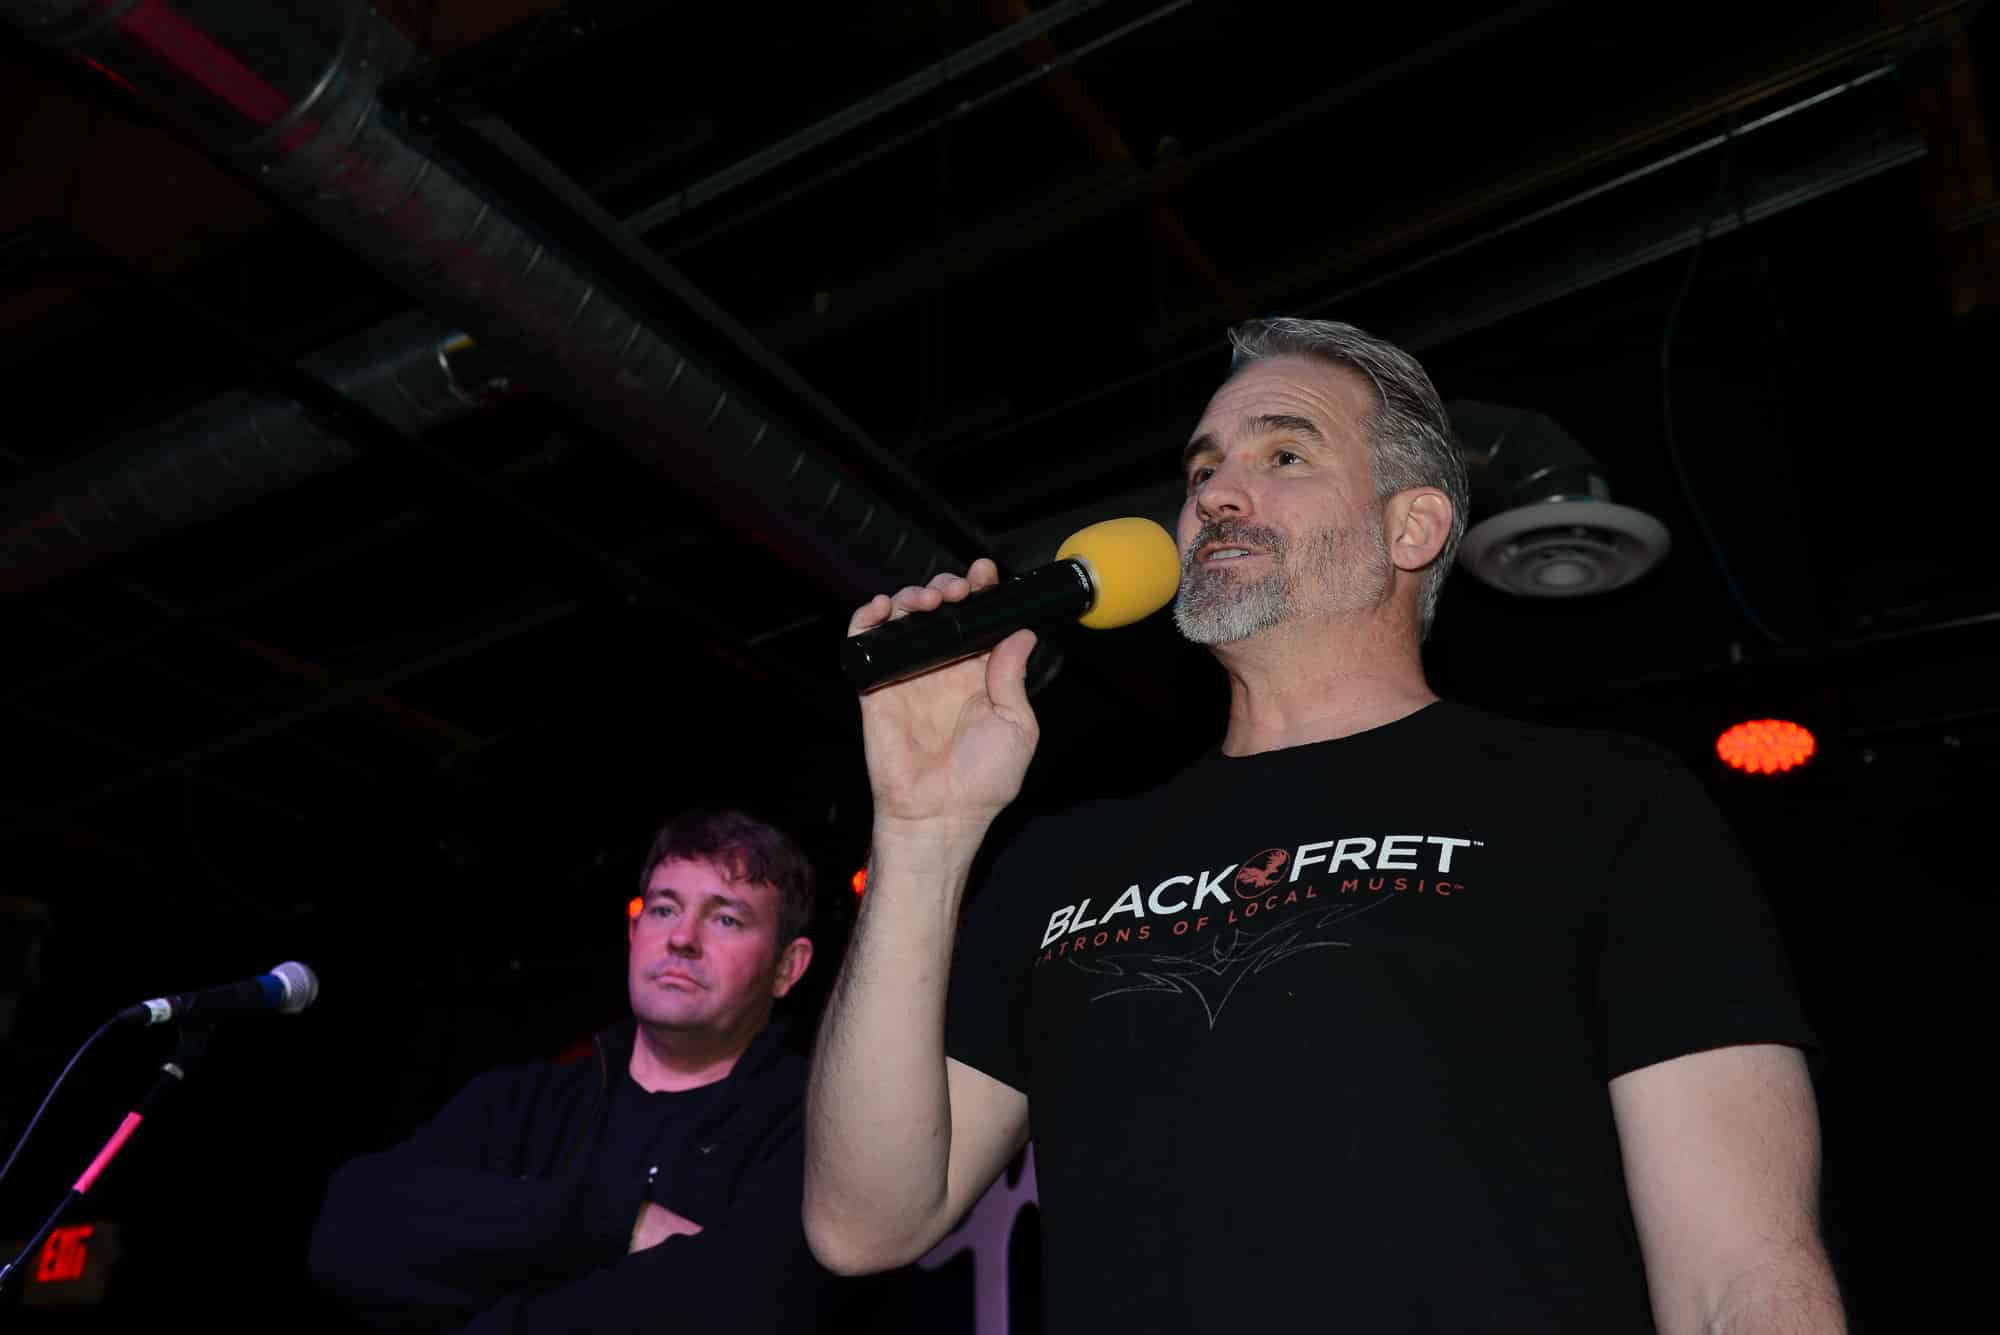 Black Fret 2014 Kickoff